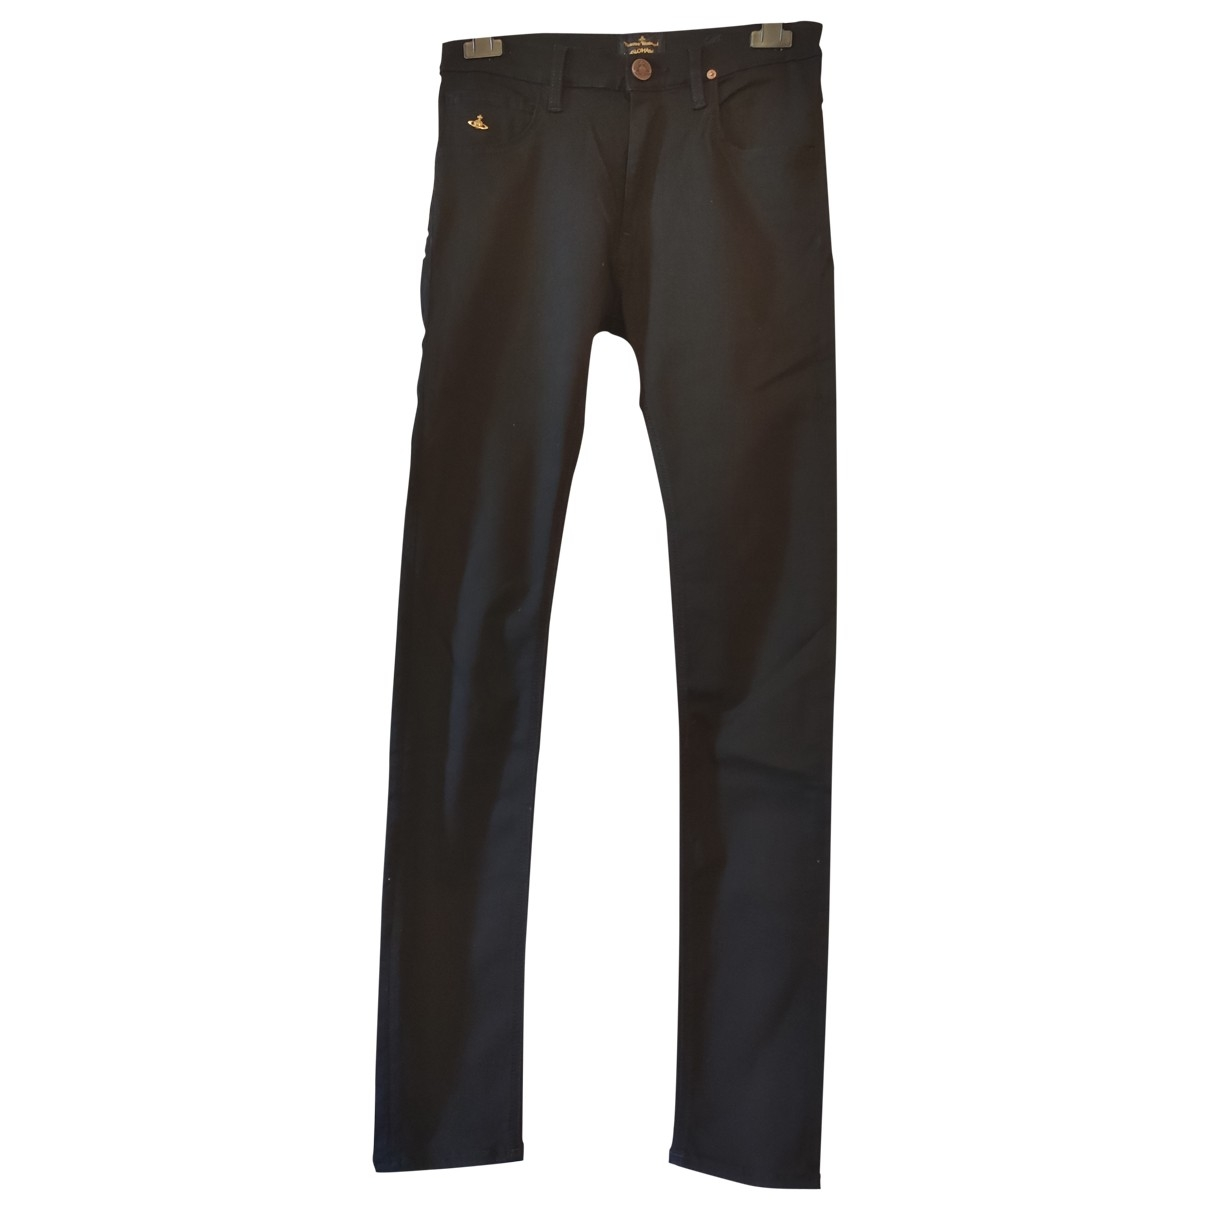 Vivienne Westwood Anglomania \N Black Cotton Jeans for Women 26 US